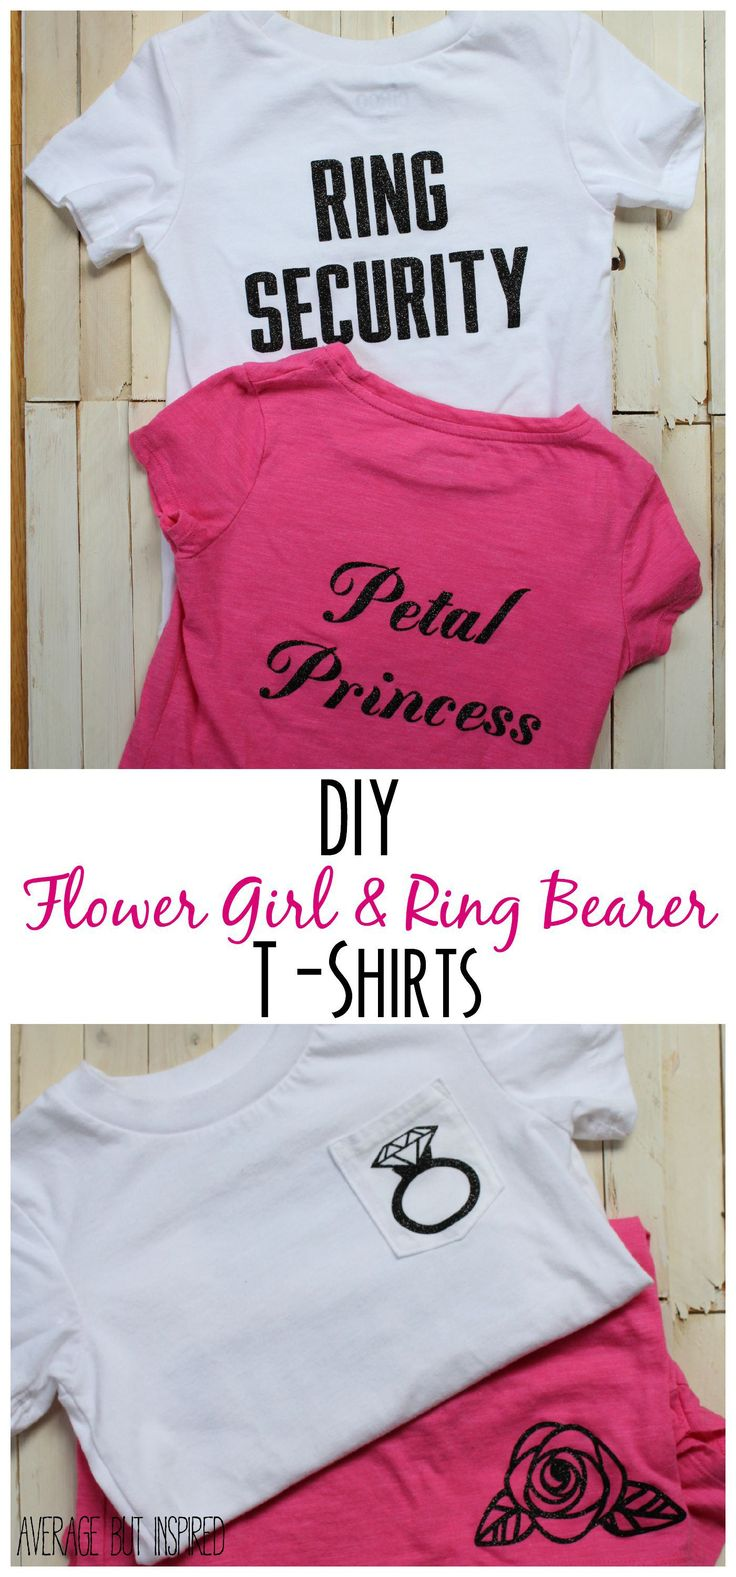 SO adorable!  Learn how to make these DIY flower girl and ring bearer t-shirts for the littlest ones in the wedding party.  They're easy and so cute!